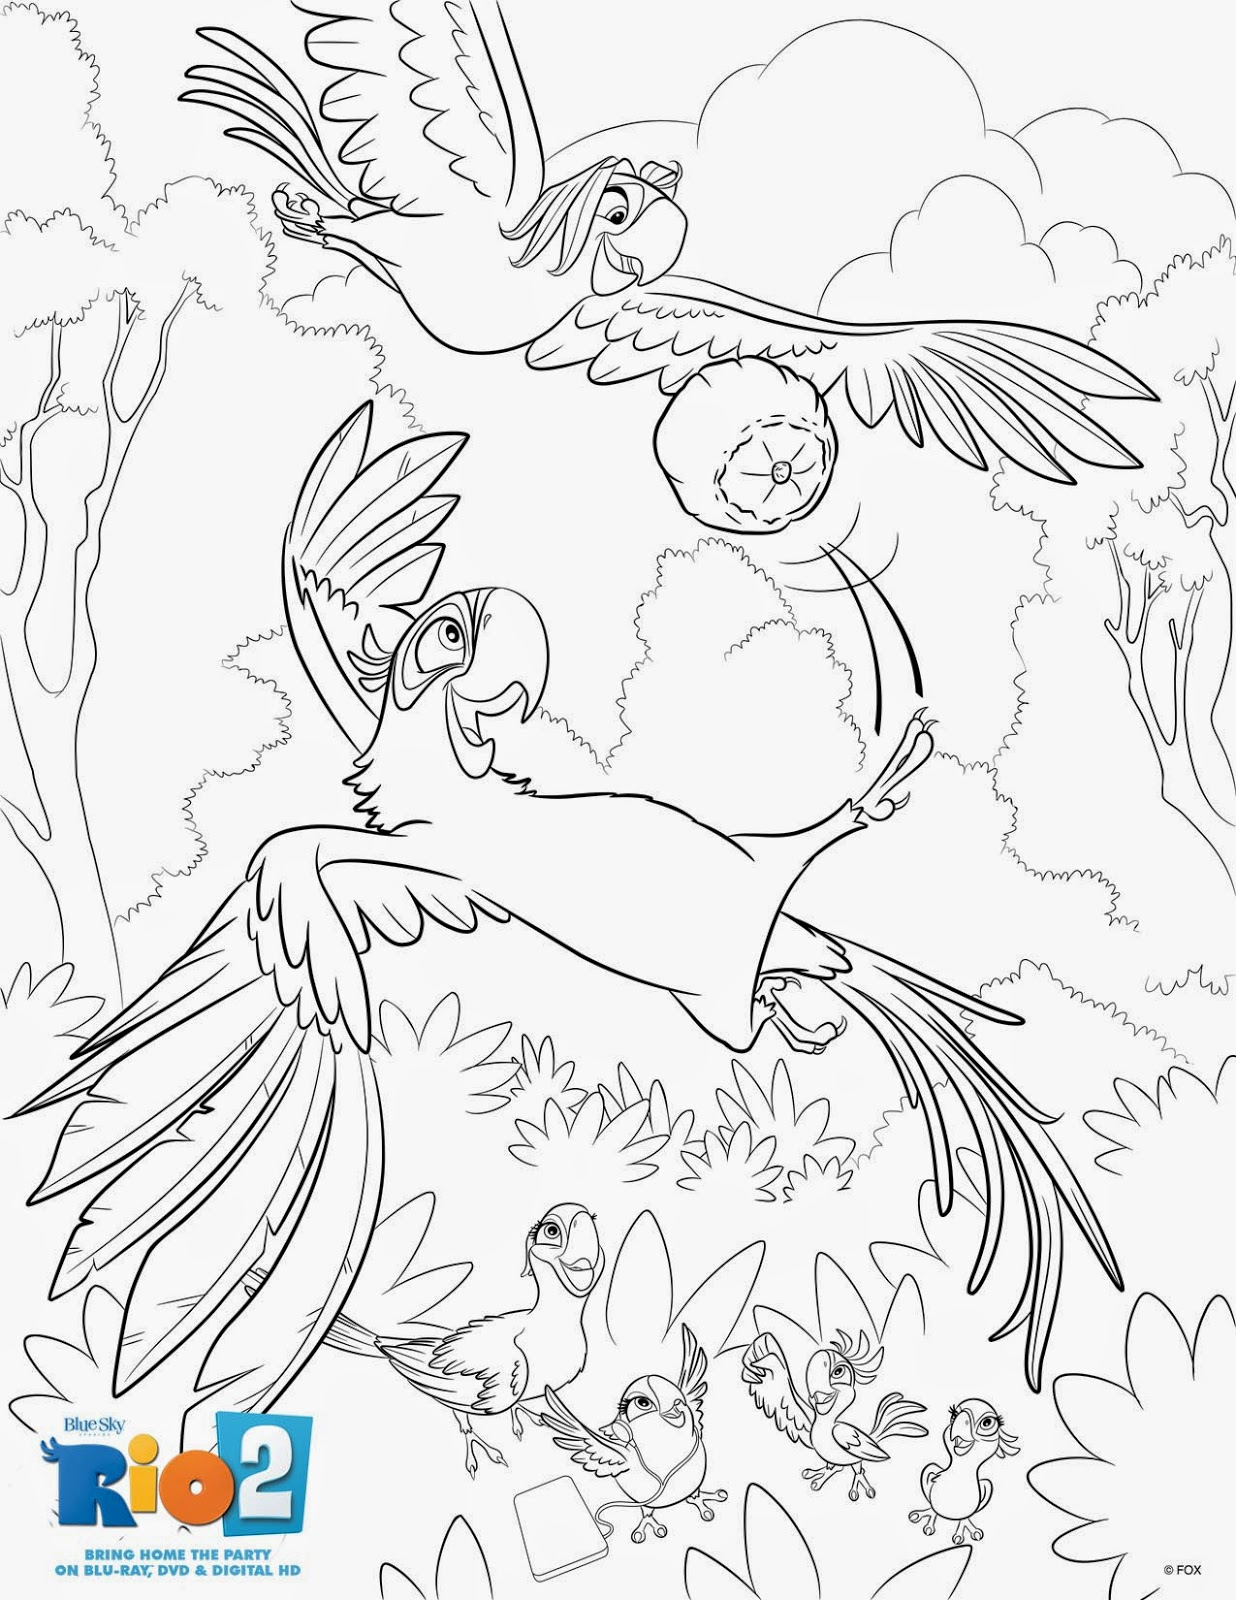 A GEEK DADDY: FREE RIO 2 COLORING PAGES & BLURAY/DVD